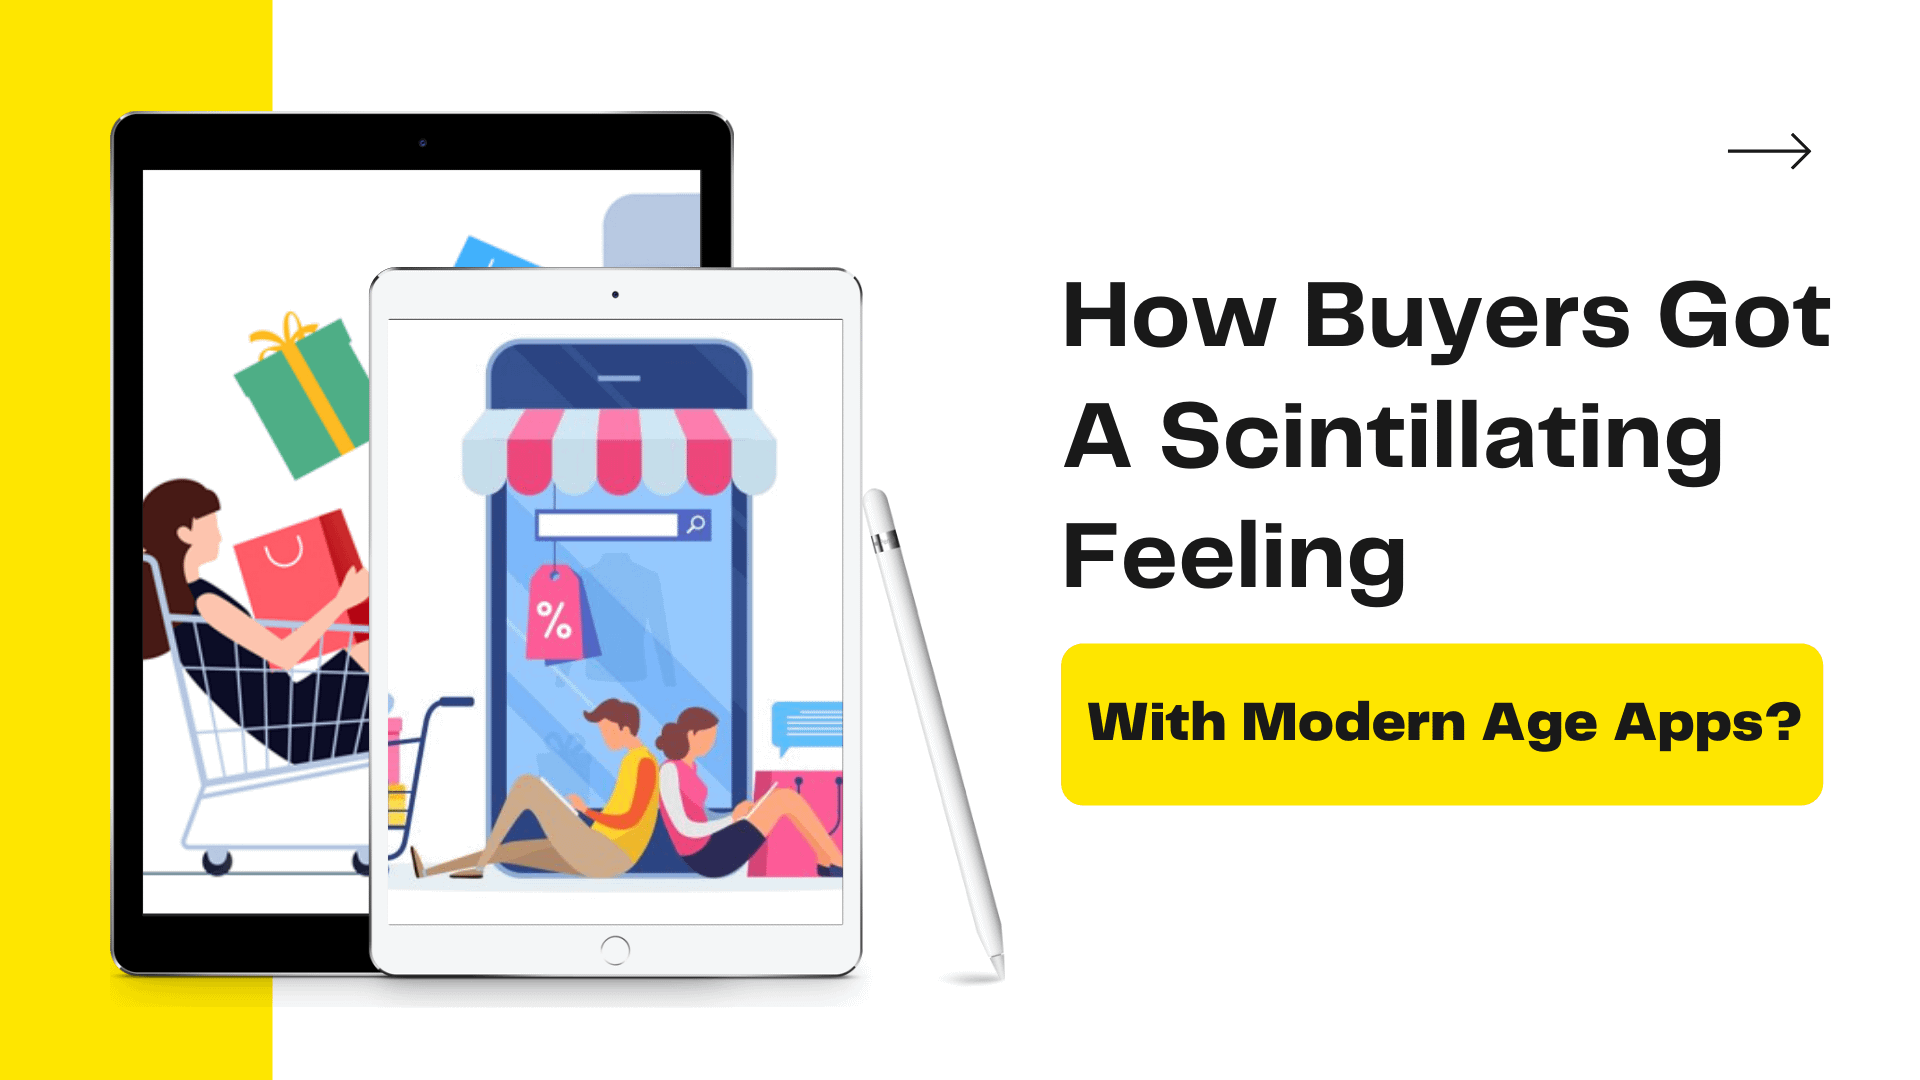 How Buyers Got A Scintillating Feeling